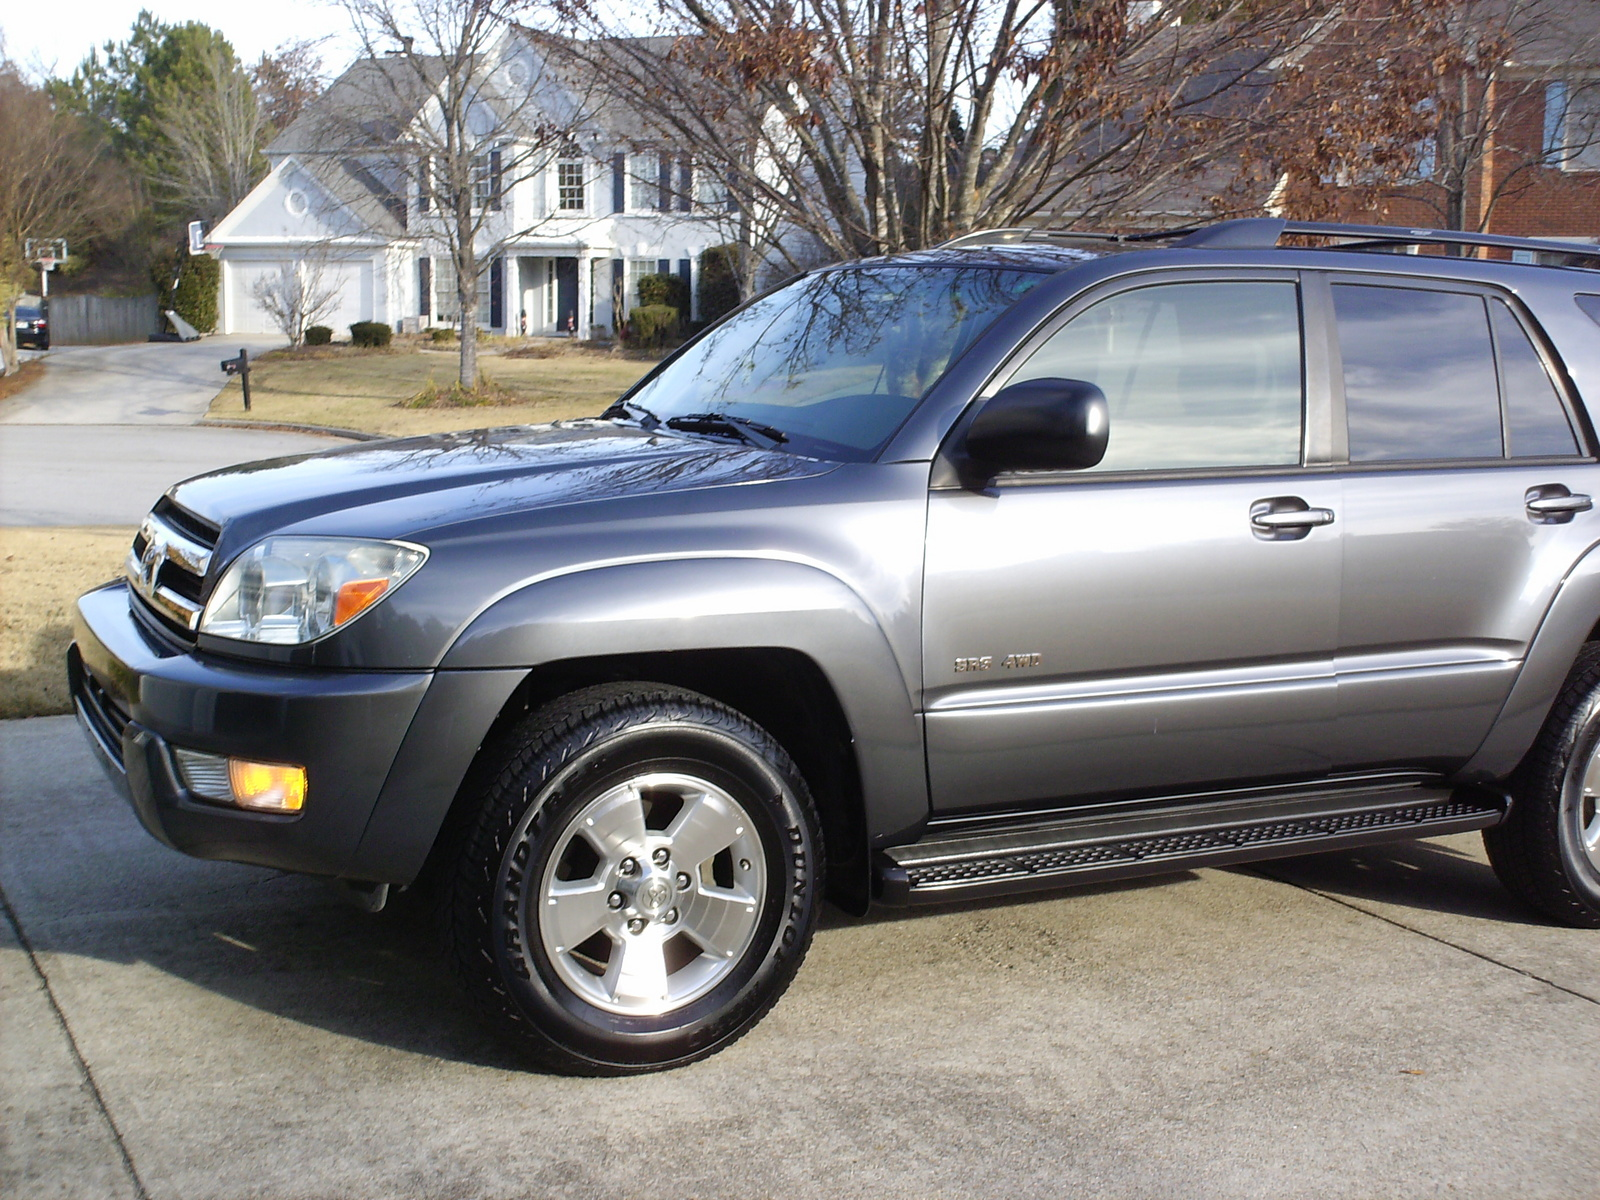 Picture of 2005 toyota 4runner sr5 v6 4wd exterior